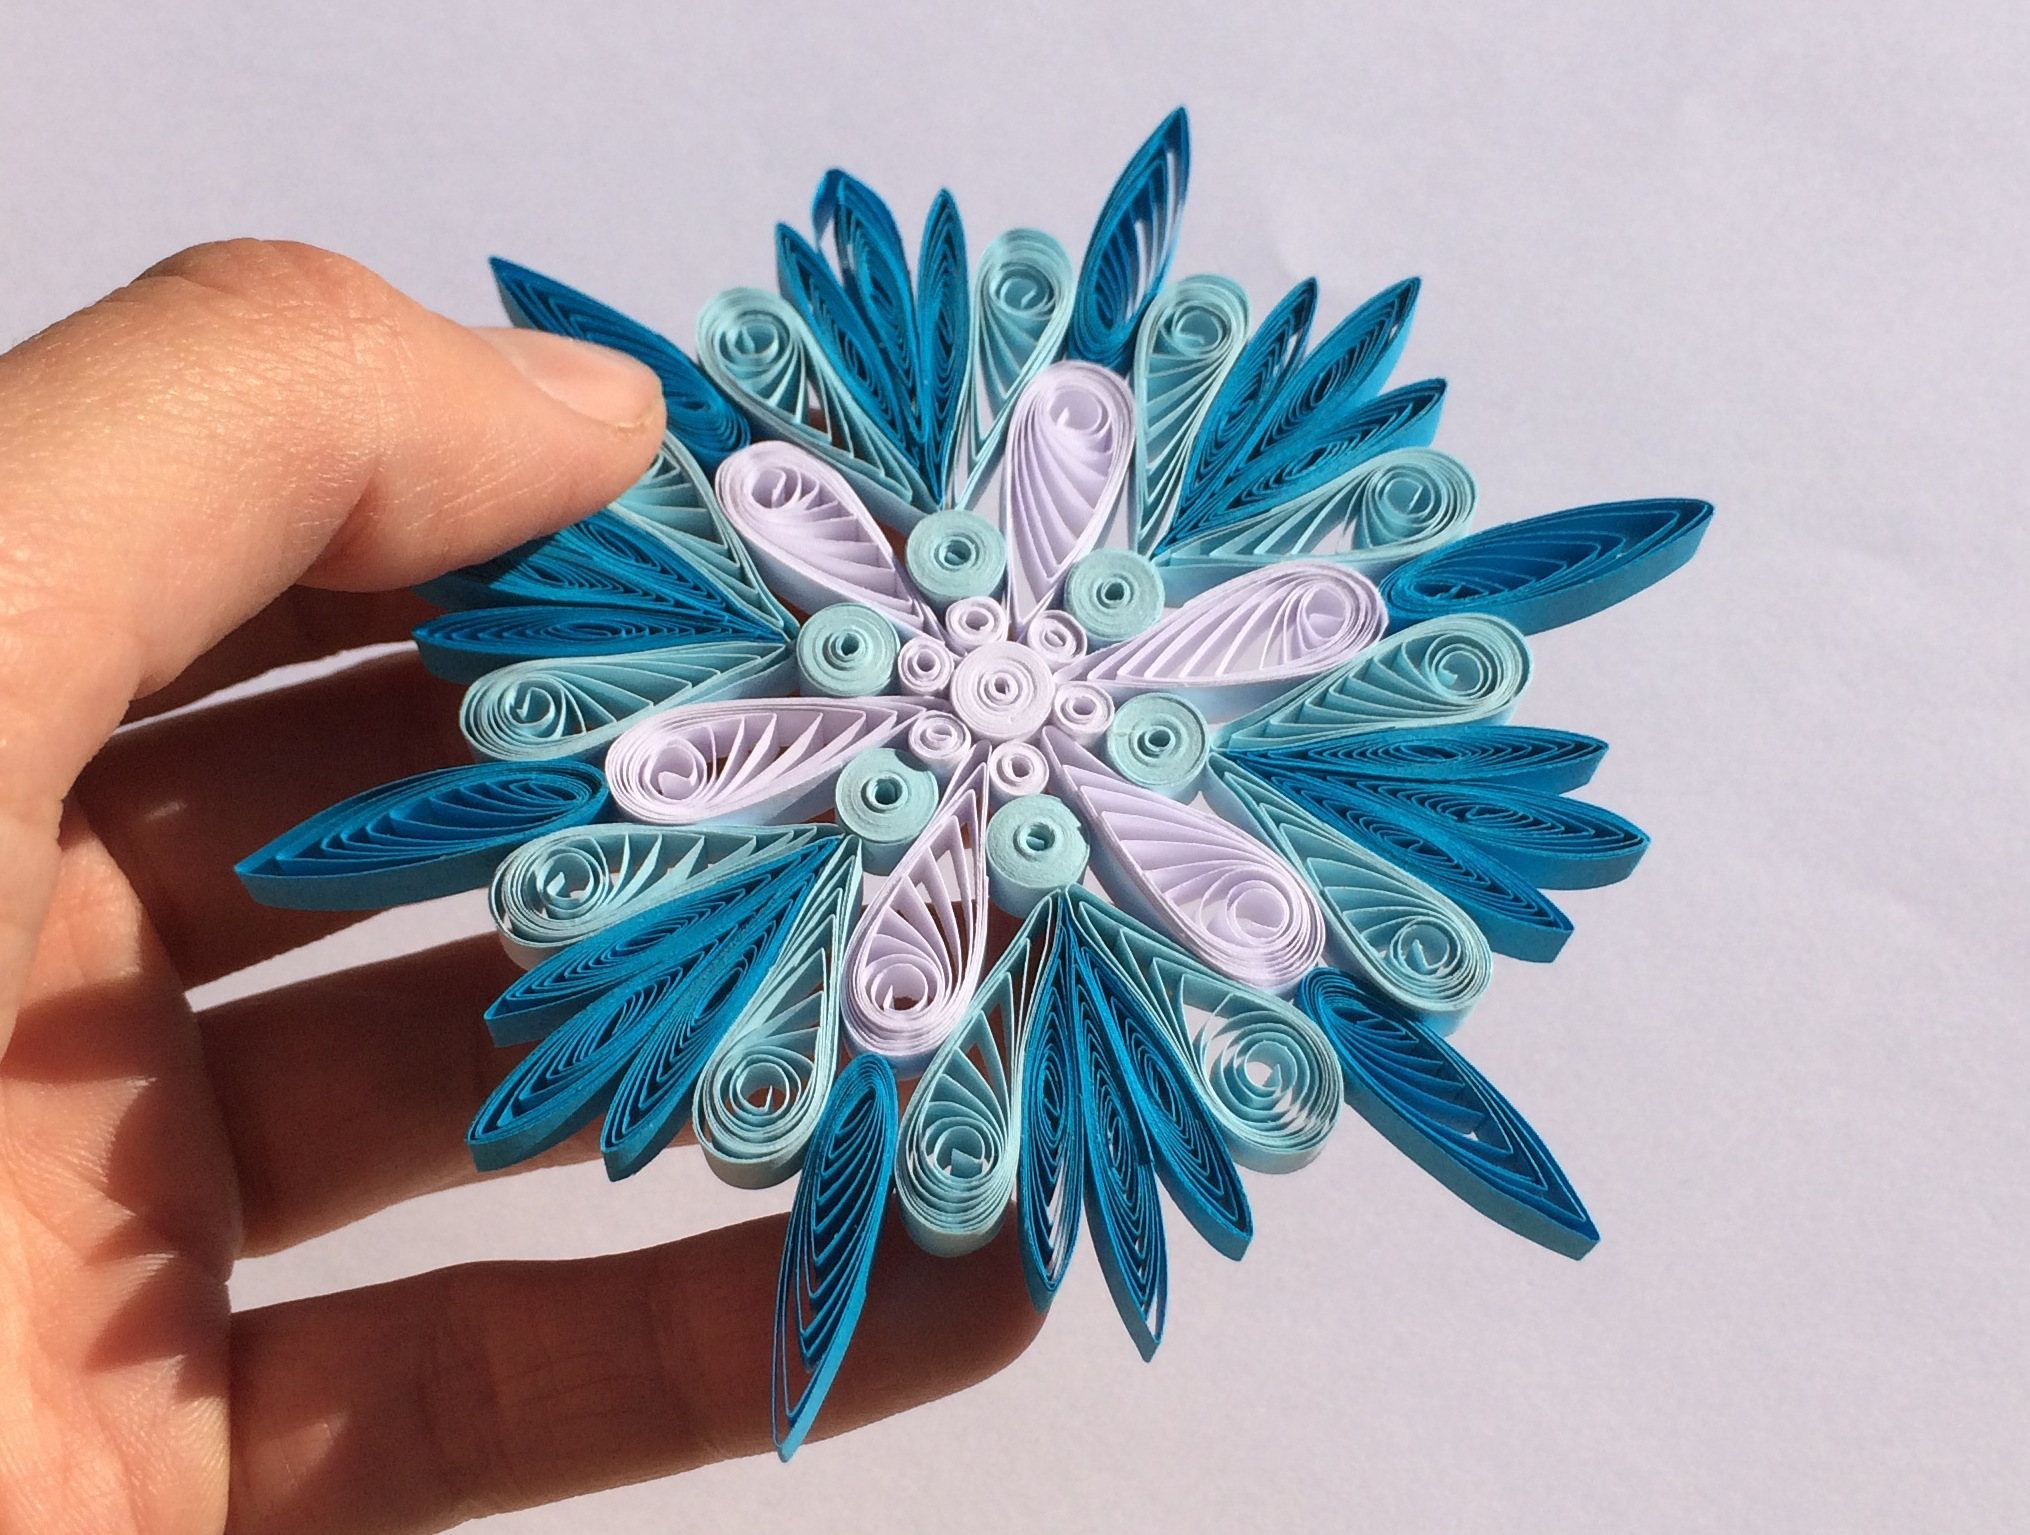 Snowflake Blue White, Quilled Handmade Art, Paper Quilling, Home Decoration  Idea, Christmas